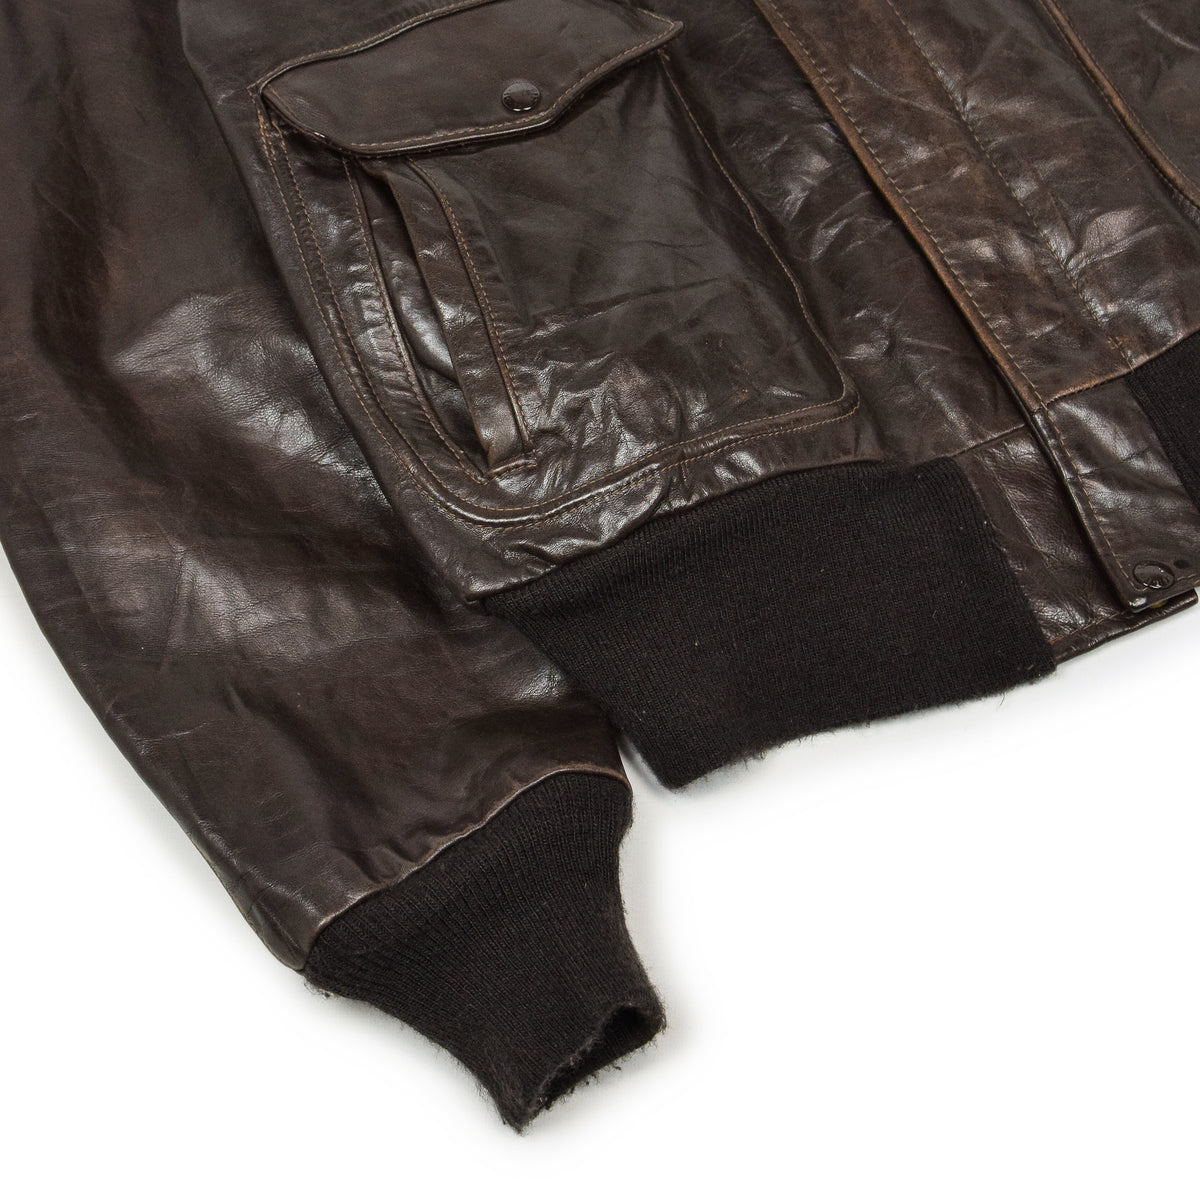 Vintage 80s A-2 Schott Brown Leather Flight Bomber Jacket Made in USA 48 XXL cuff